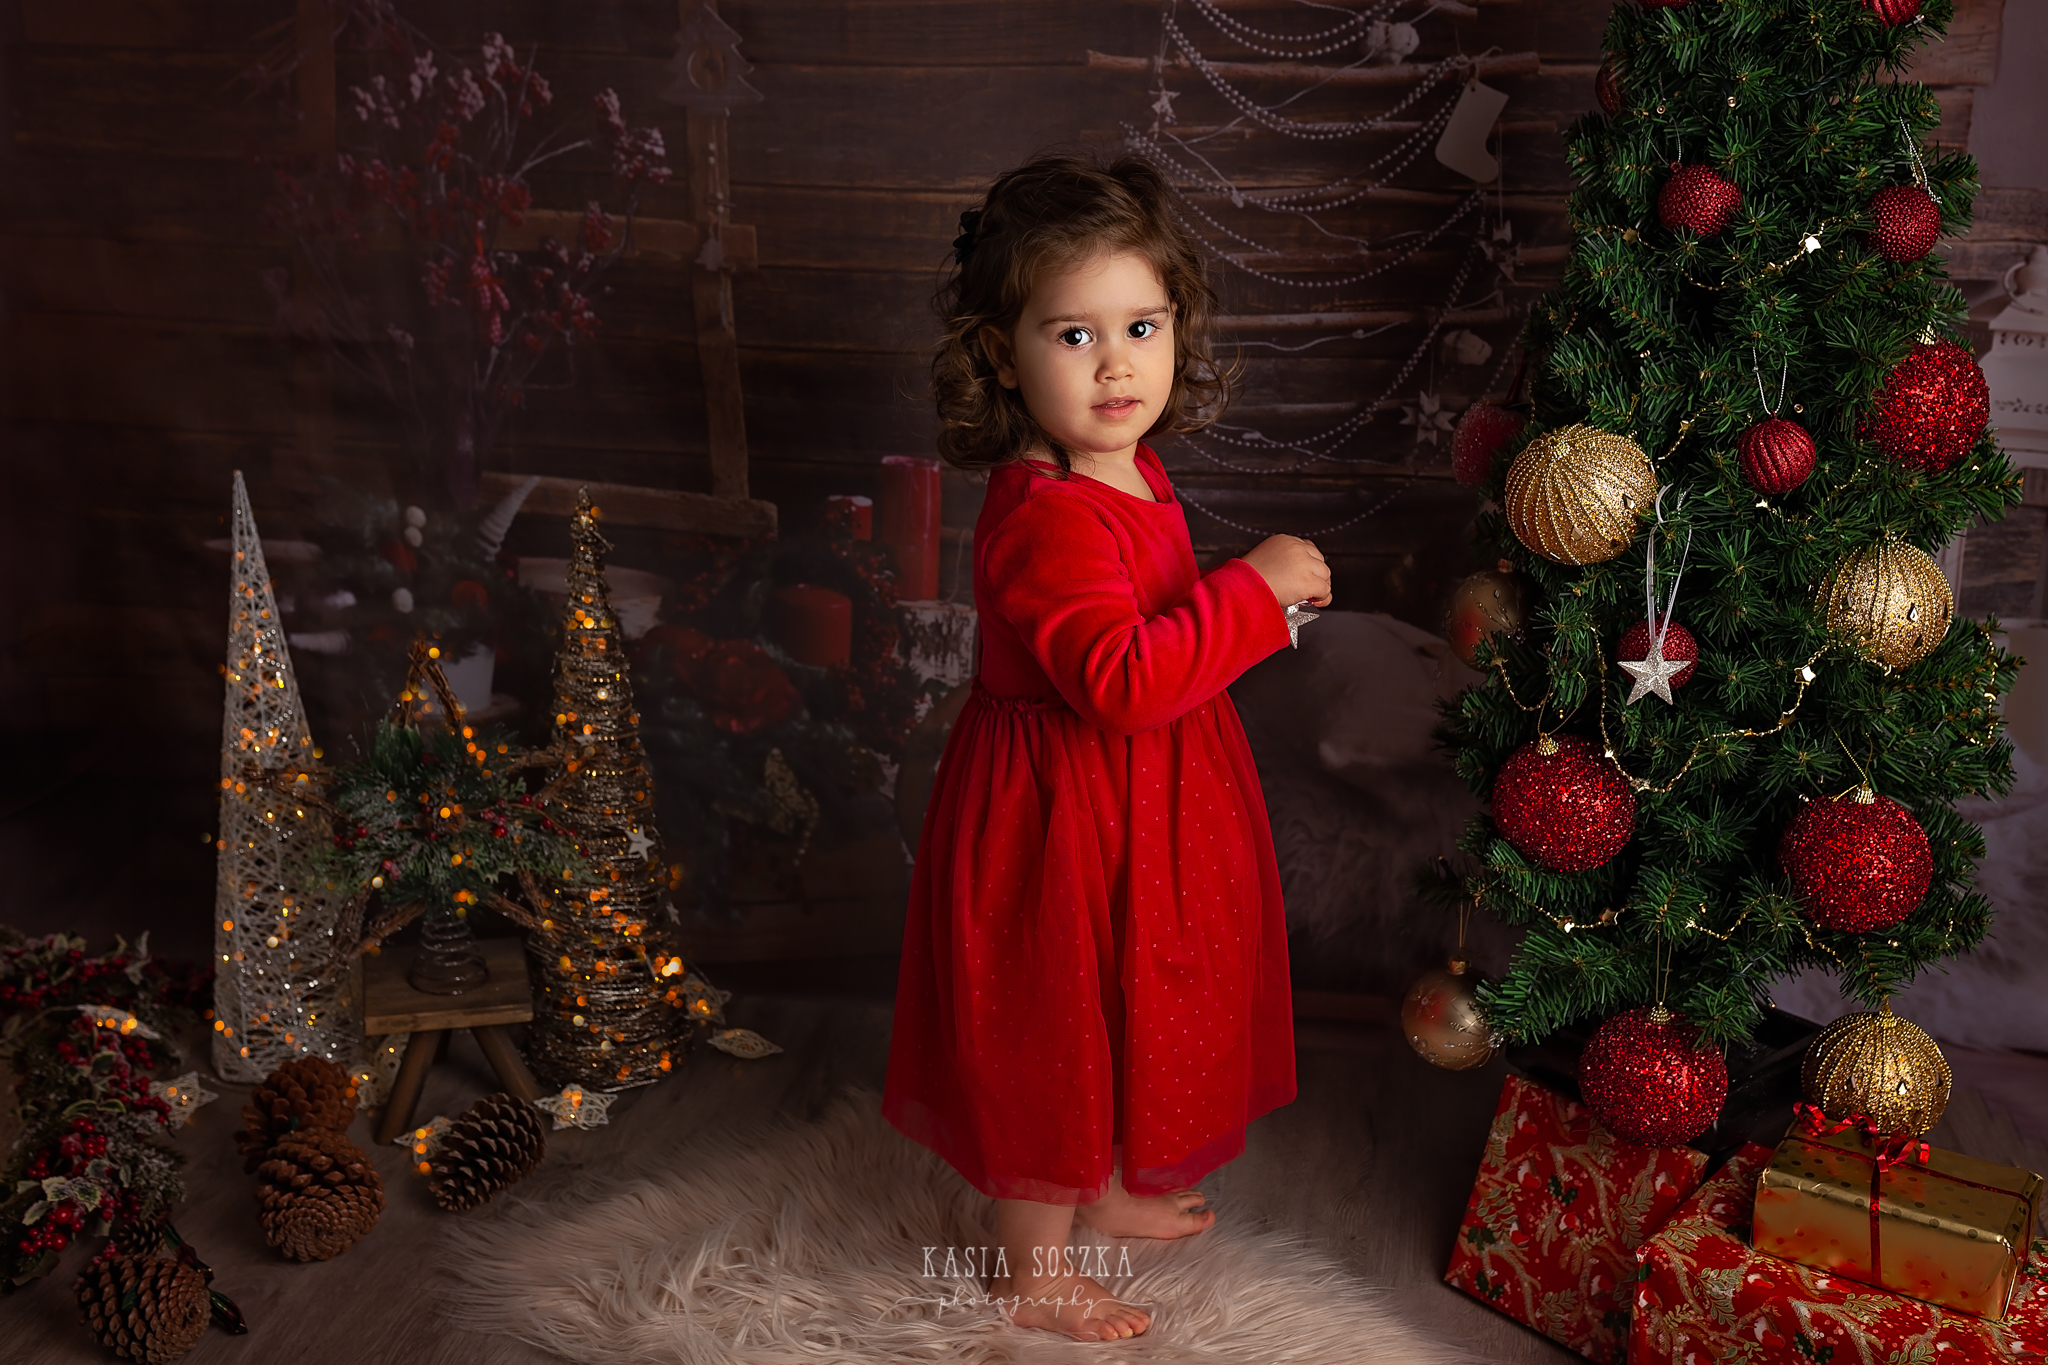 Child photographer Leeds, York, Bradford, Harrogate. Christmas Mini Sessions 2018 Leeds: beautiful little girl in a red dress decorating Christmas tree.